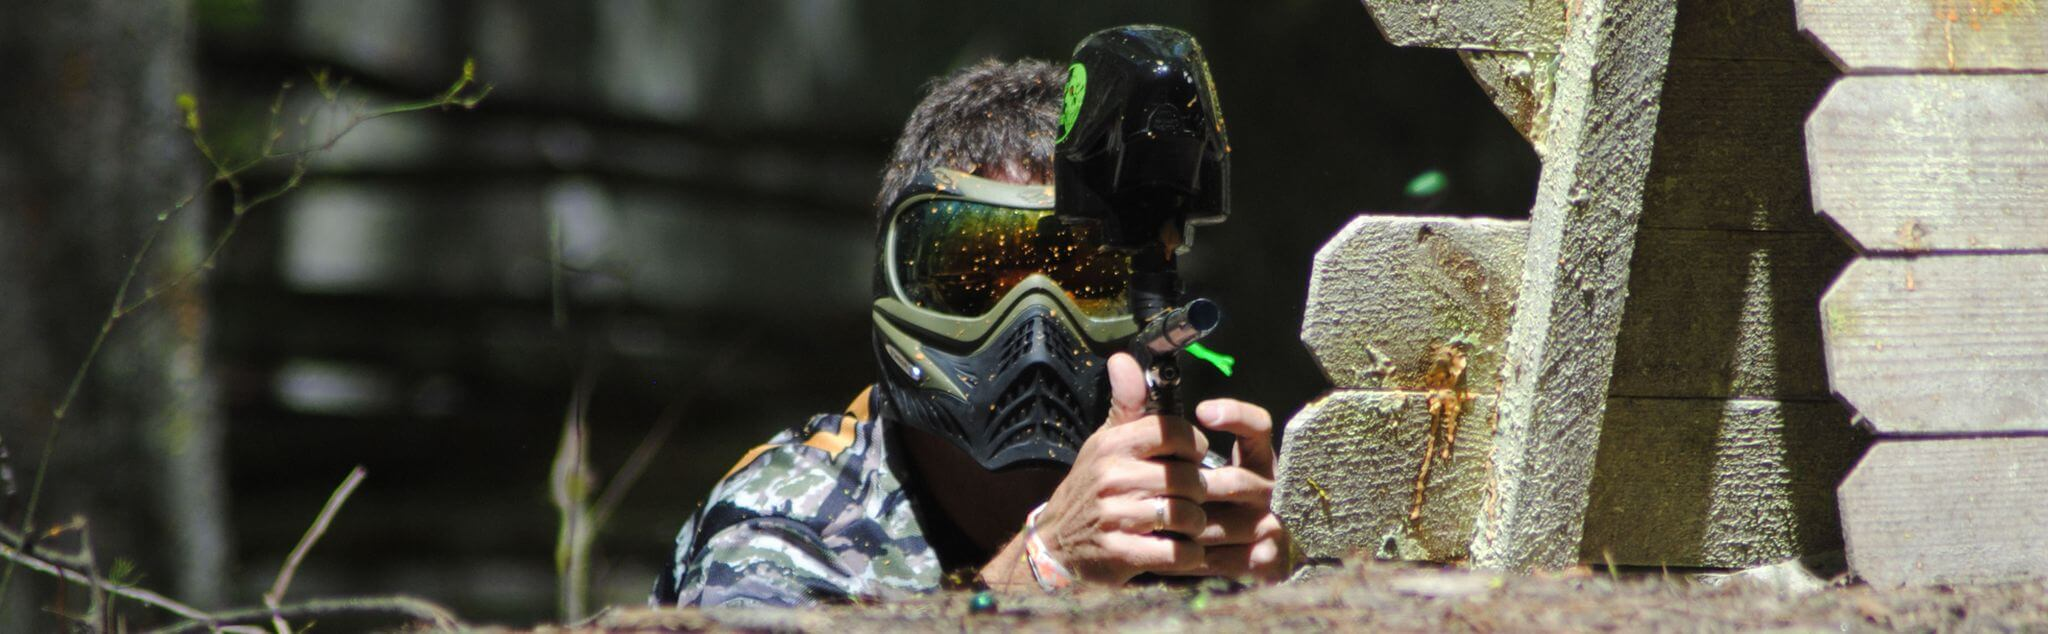 Paintball a Vitulazio